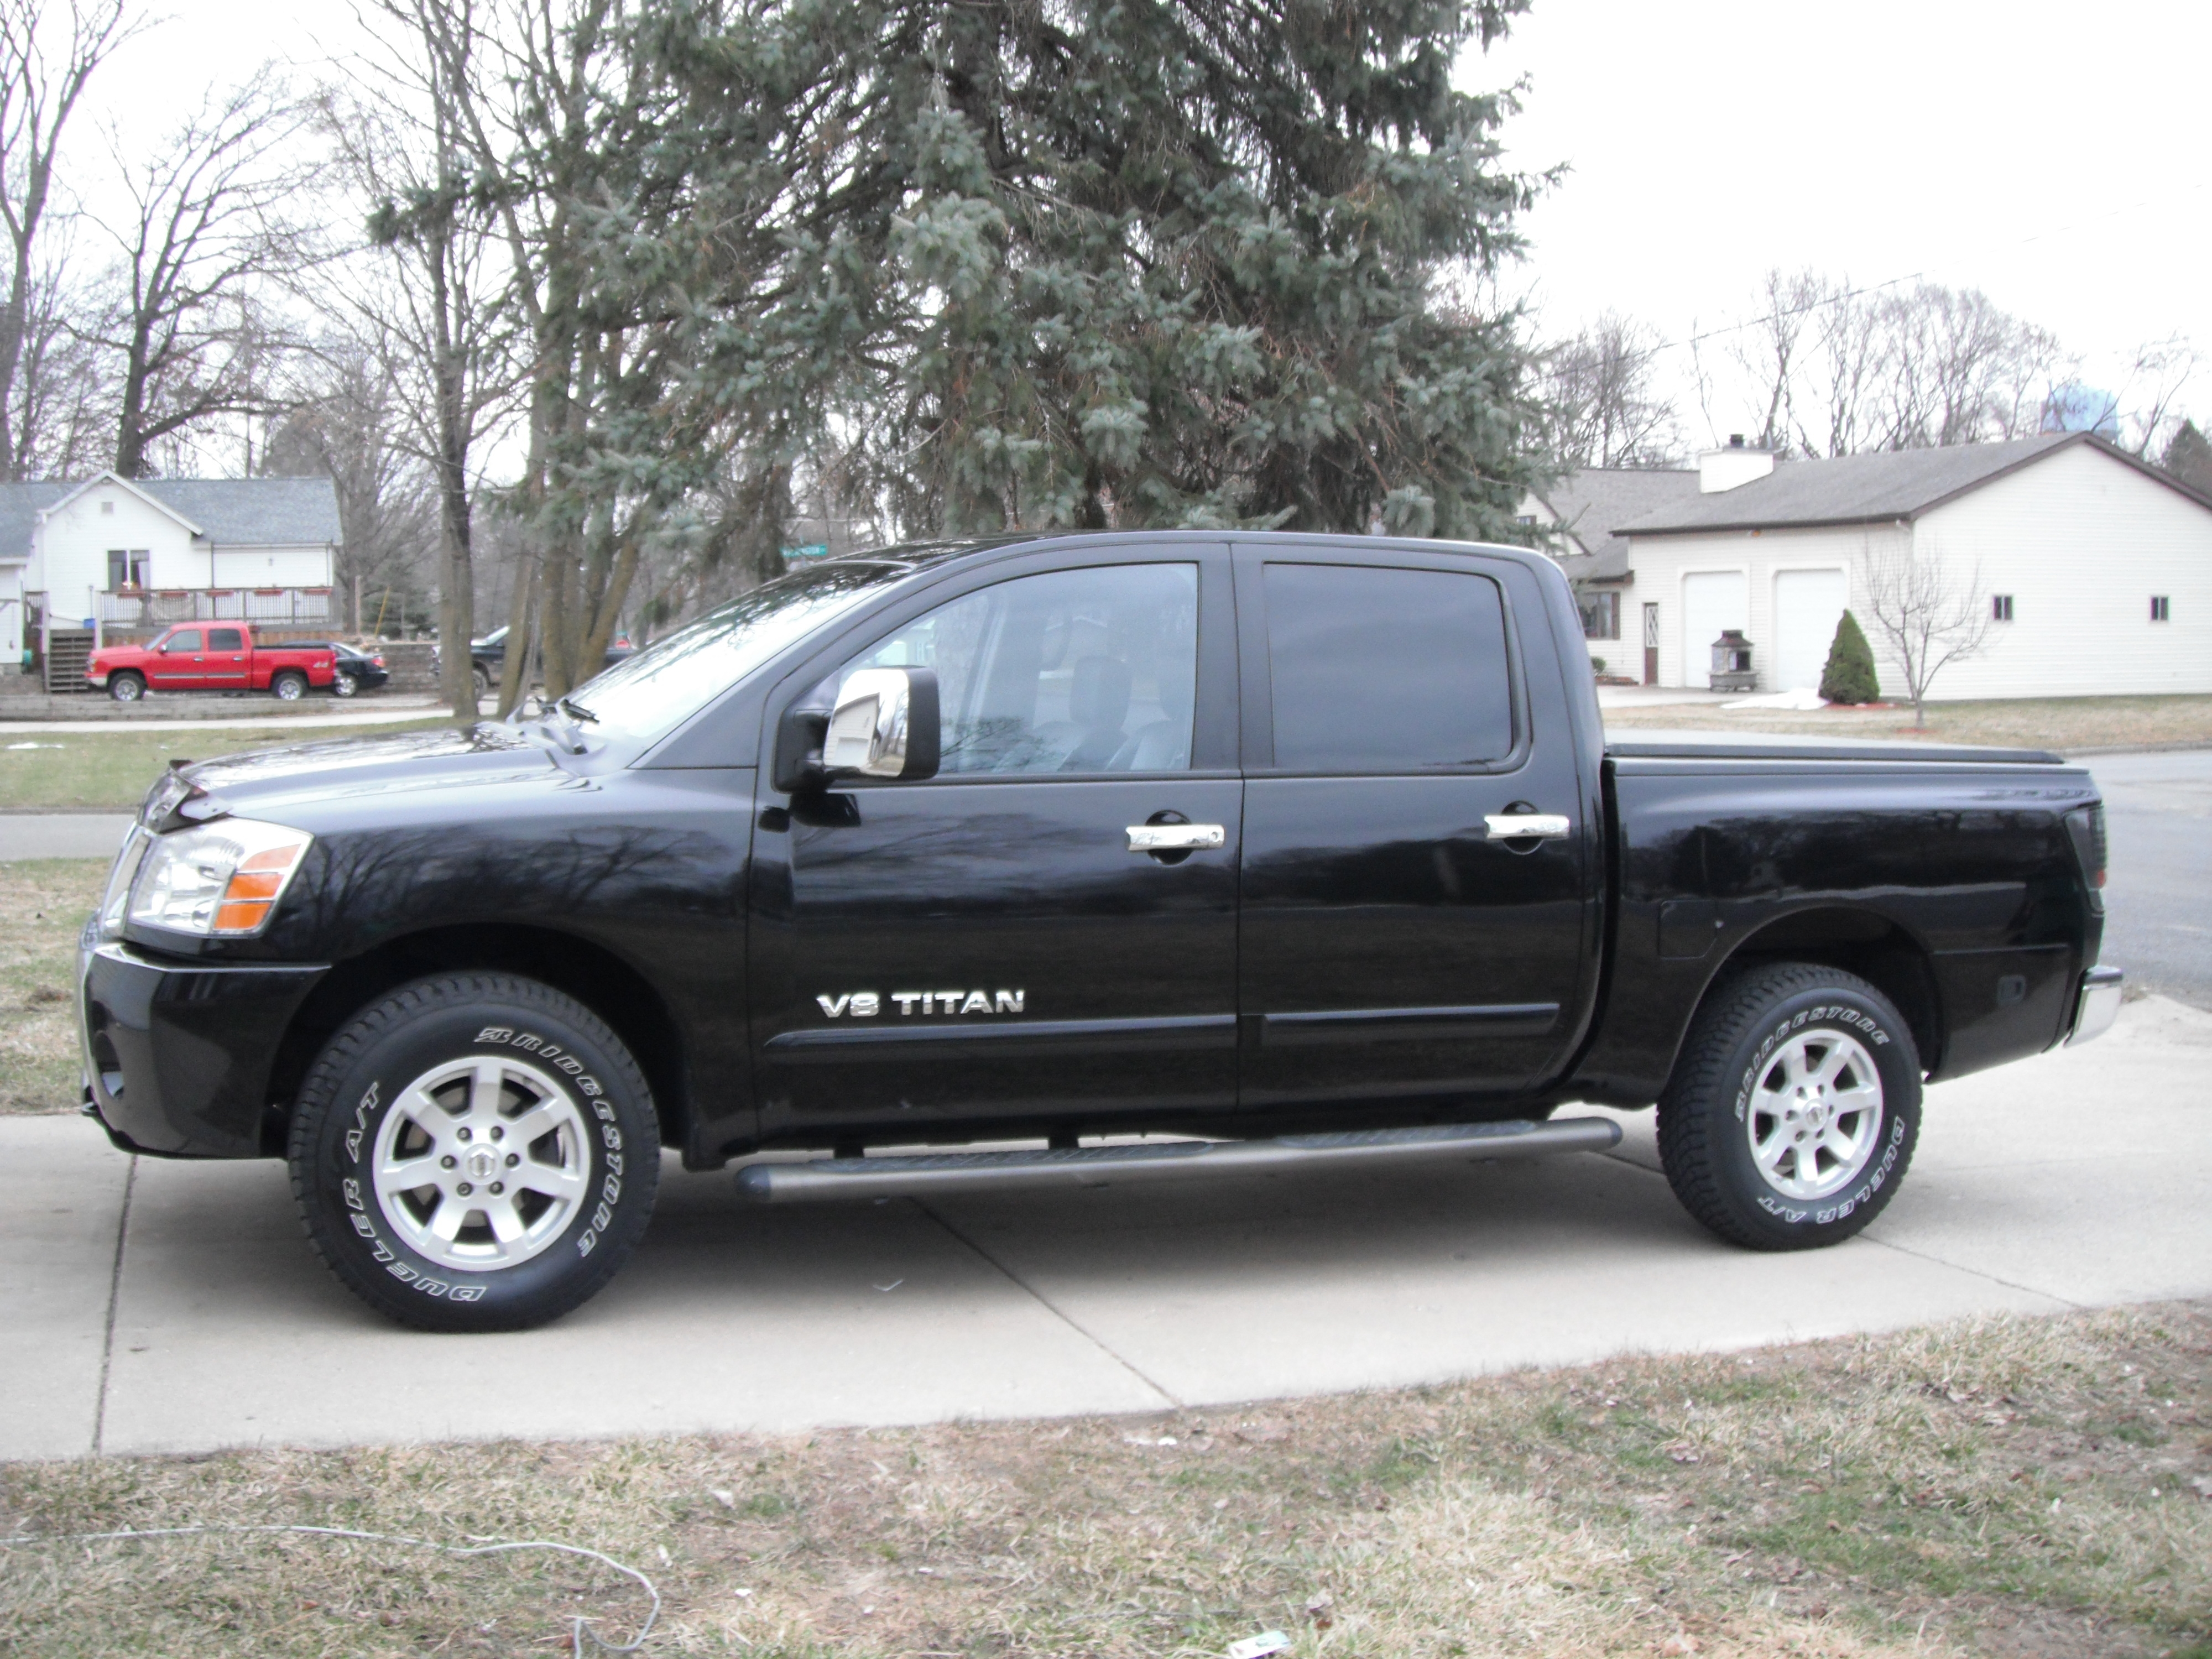 tighttitan 2004 nissan titan crew cab specs photos modification info at cardomain. Black Bedroom Furniture Sets. Home Design Ideas